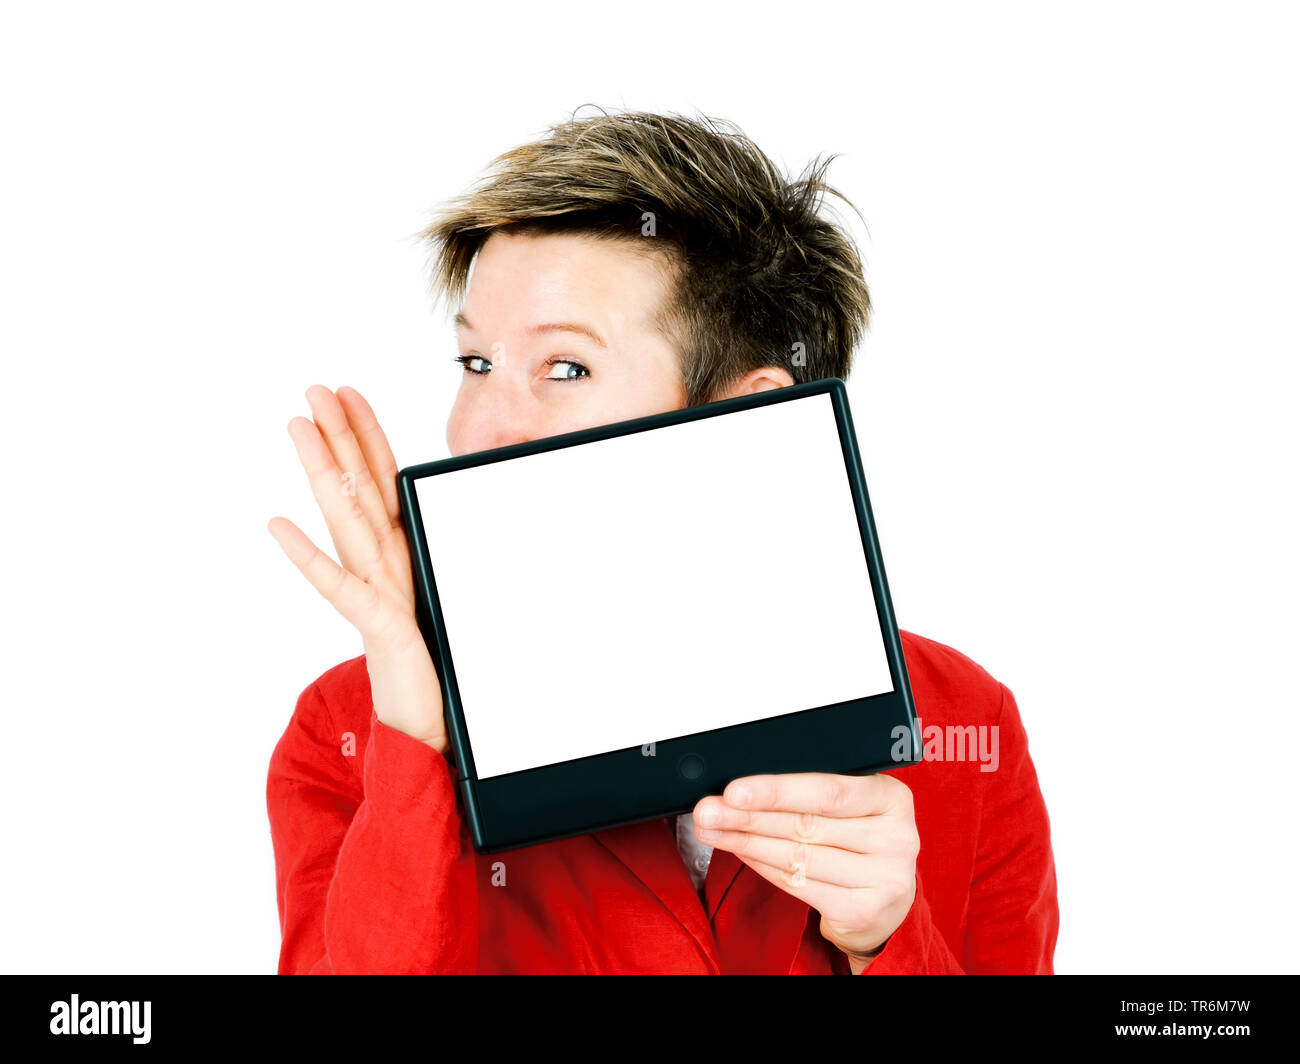 shorthaired woman presenting a blank screen, Germany - Stock Image